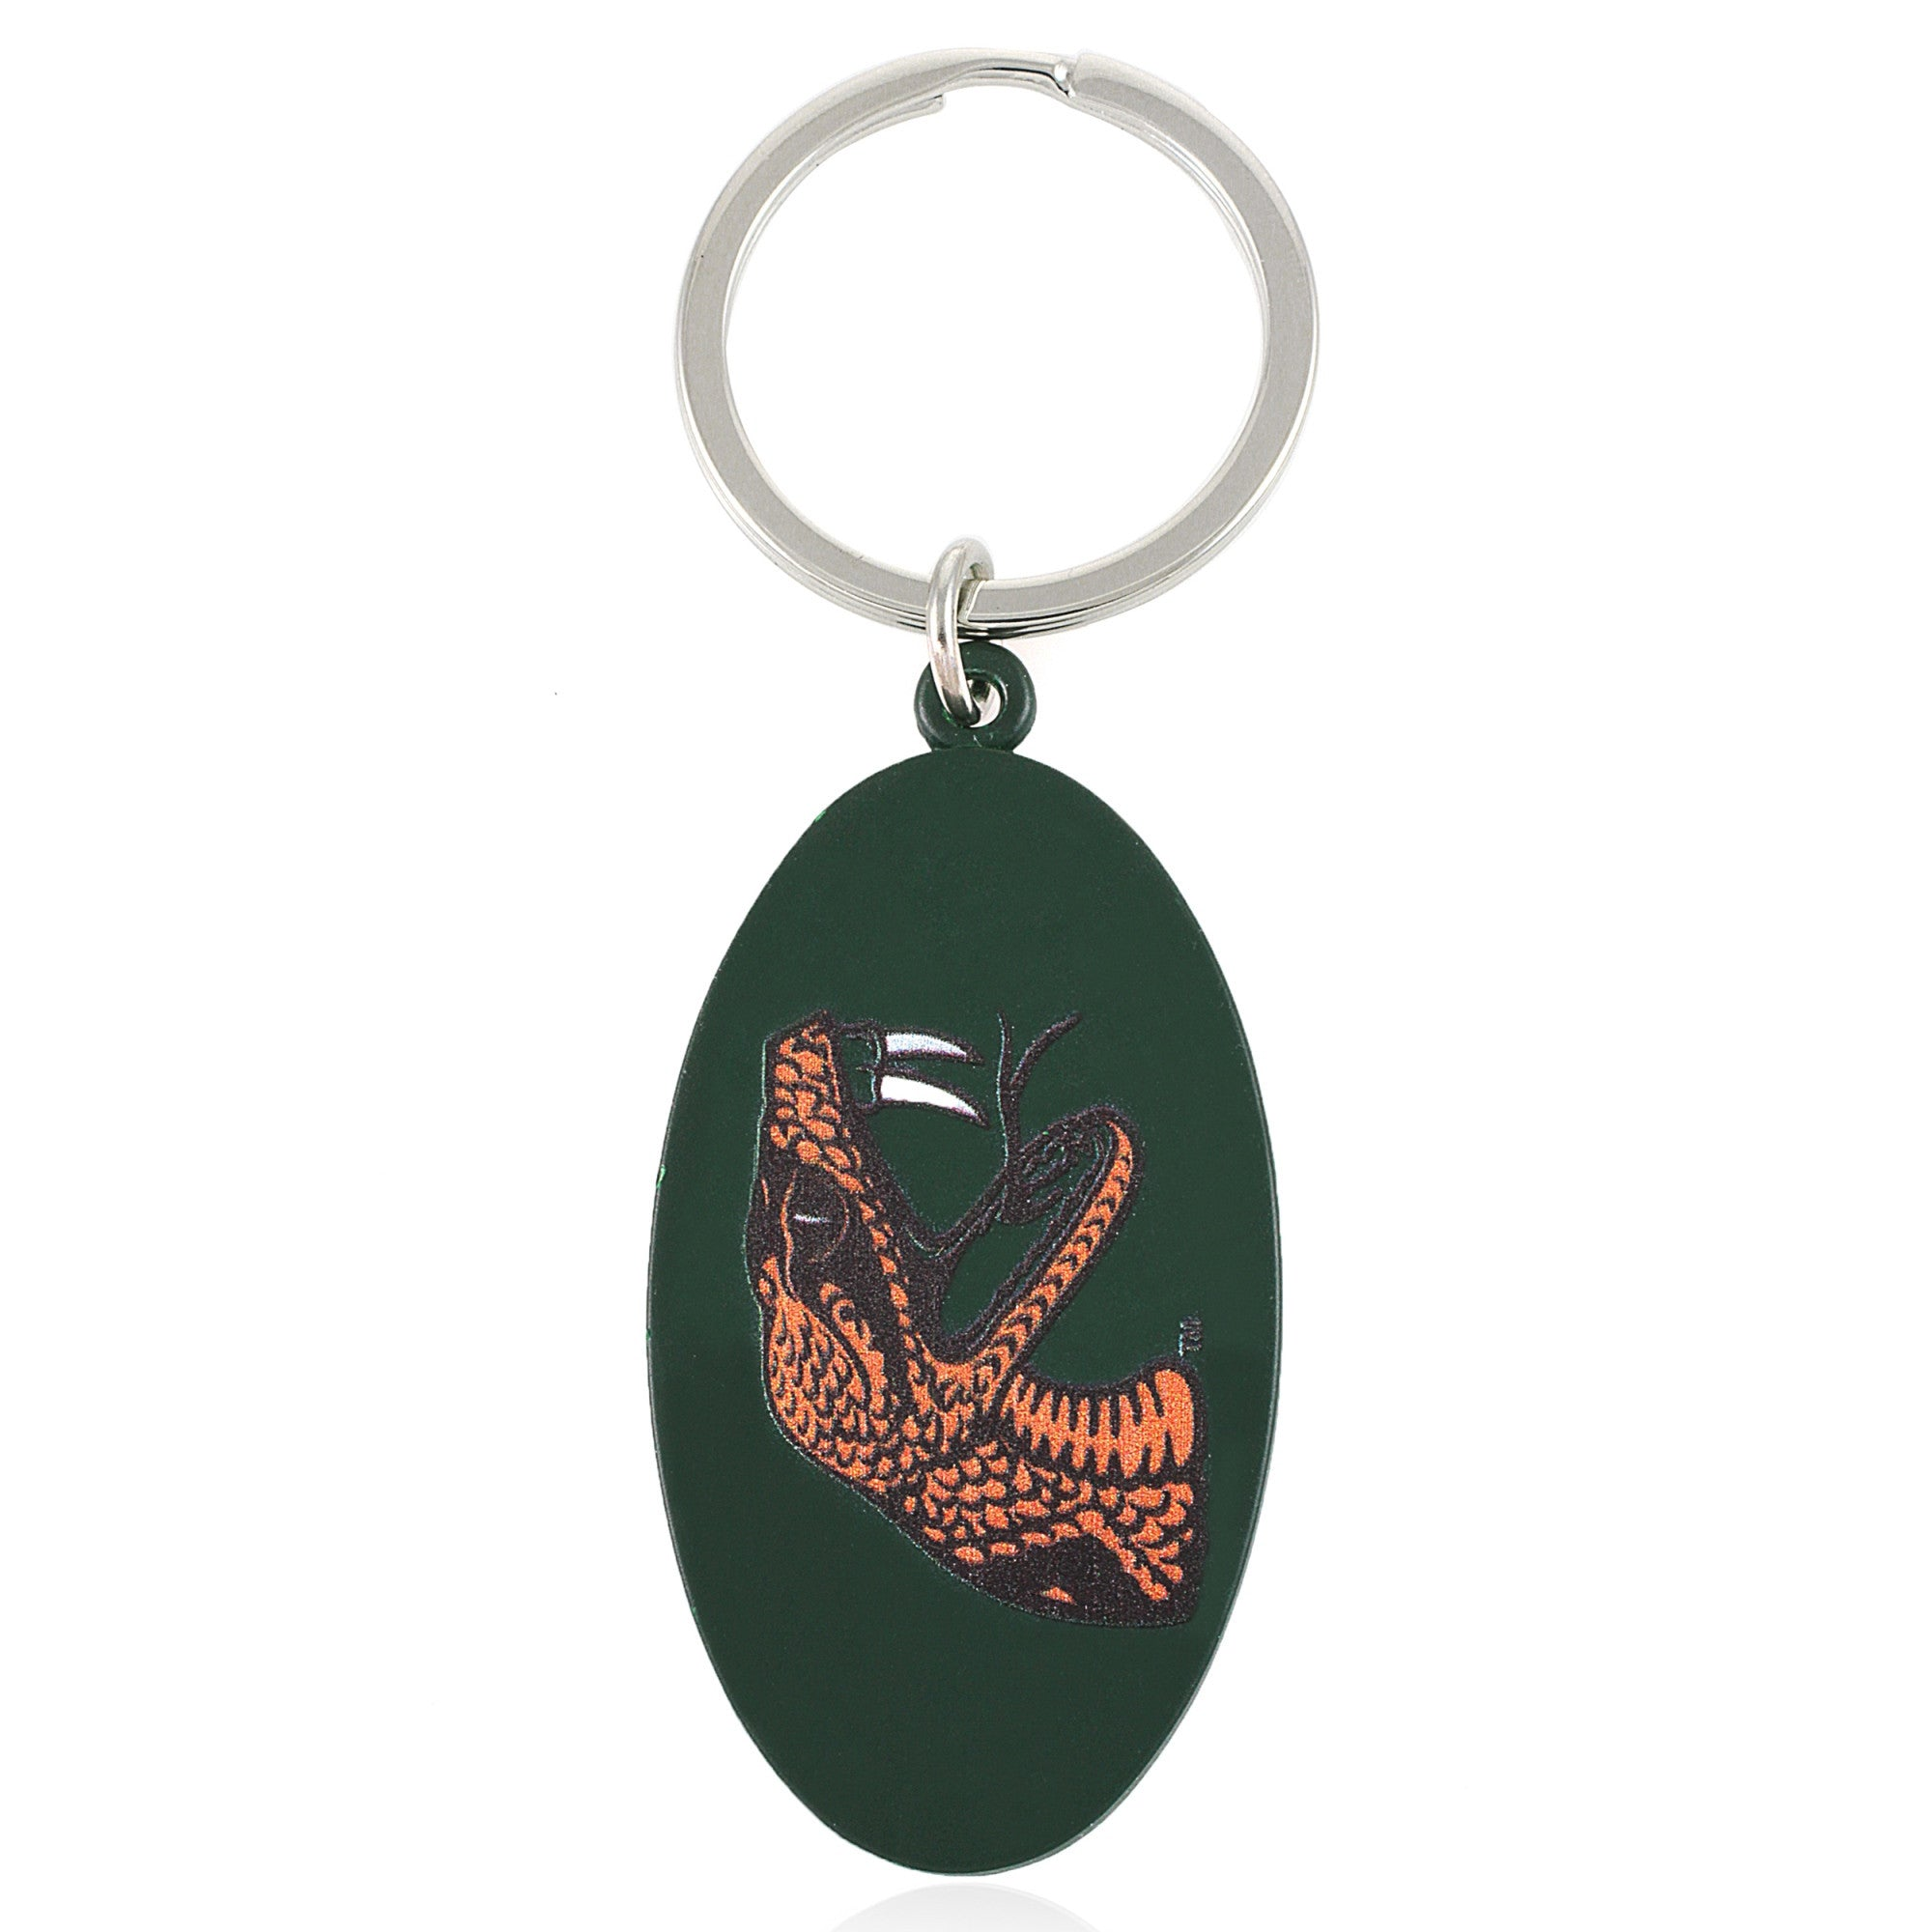 Florida A&M University Rattlers Key Chain